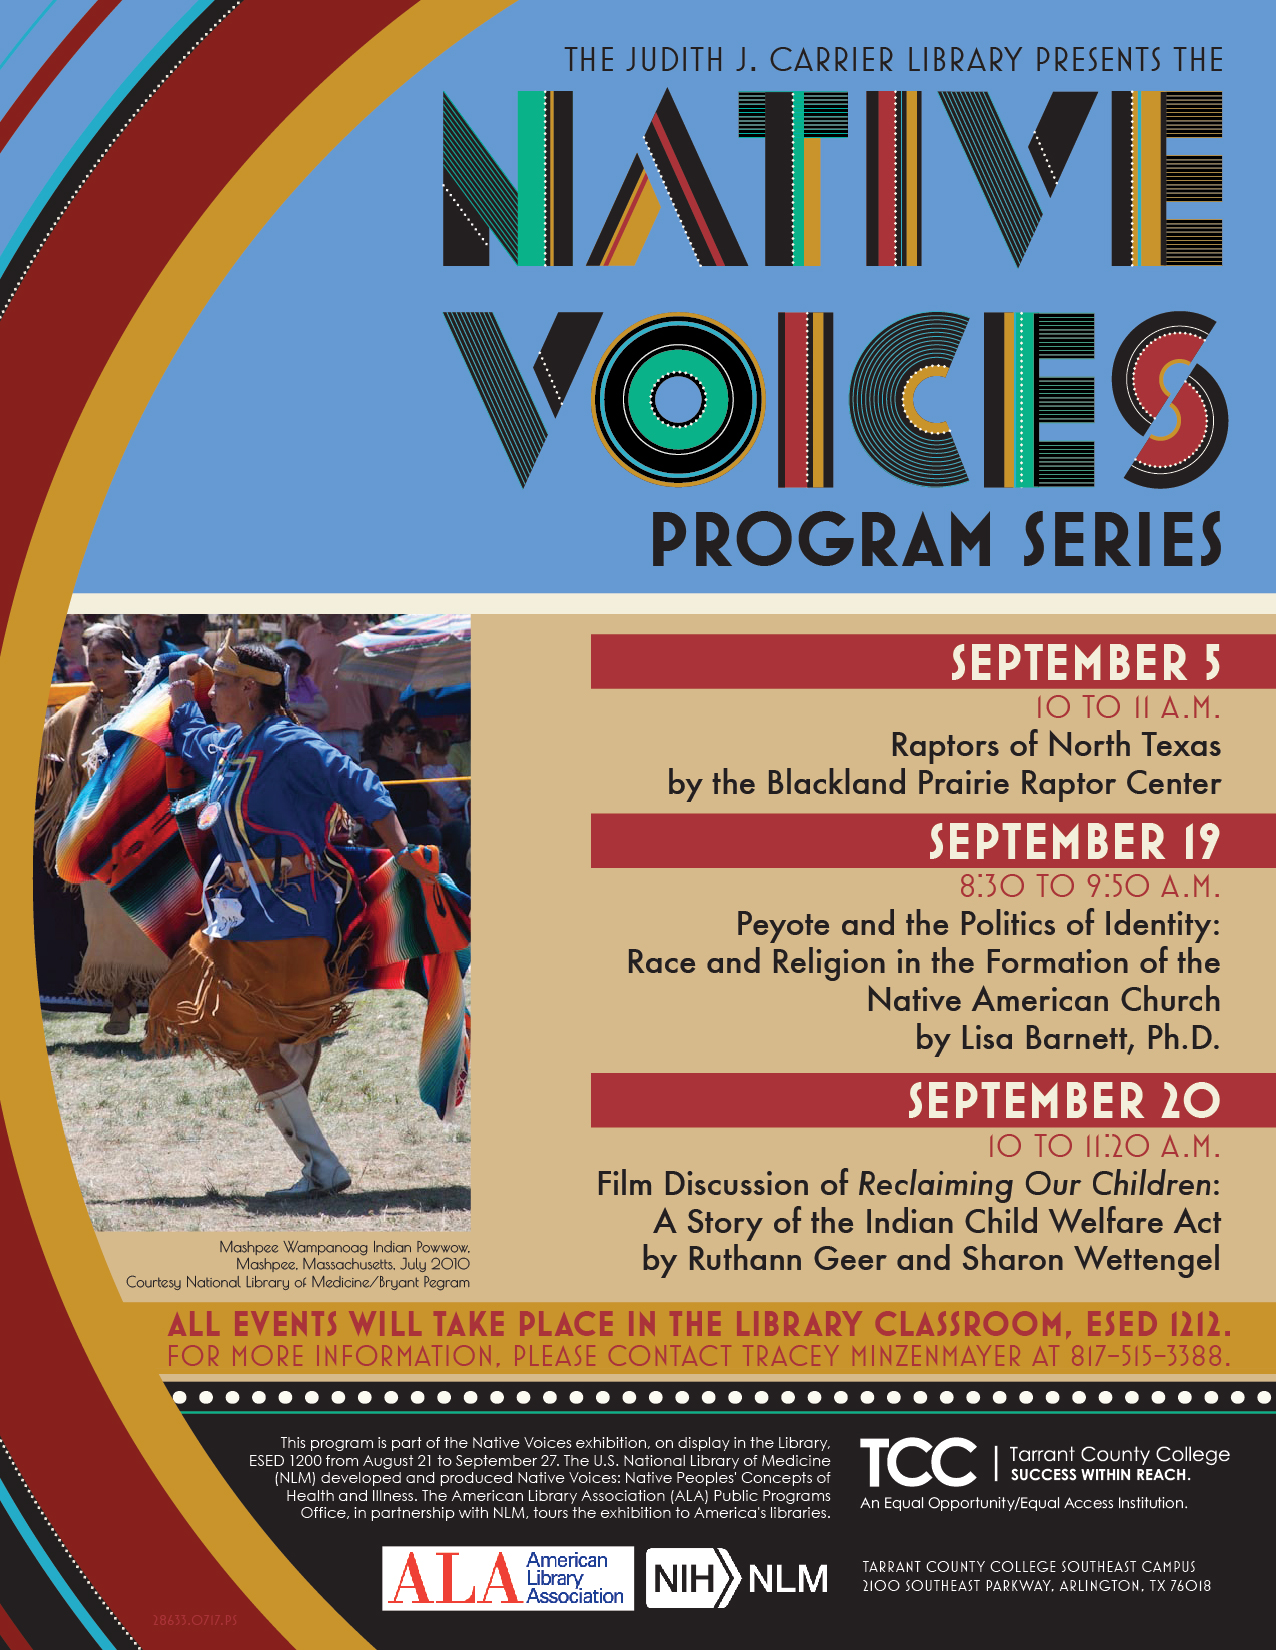 Schedule for Native Voice; Also available in text on other side of page